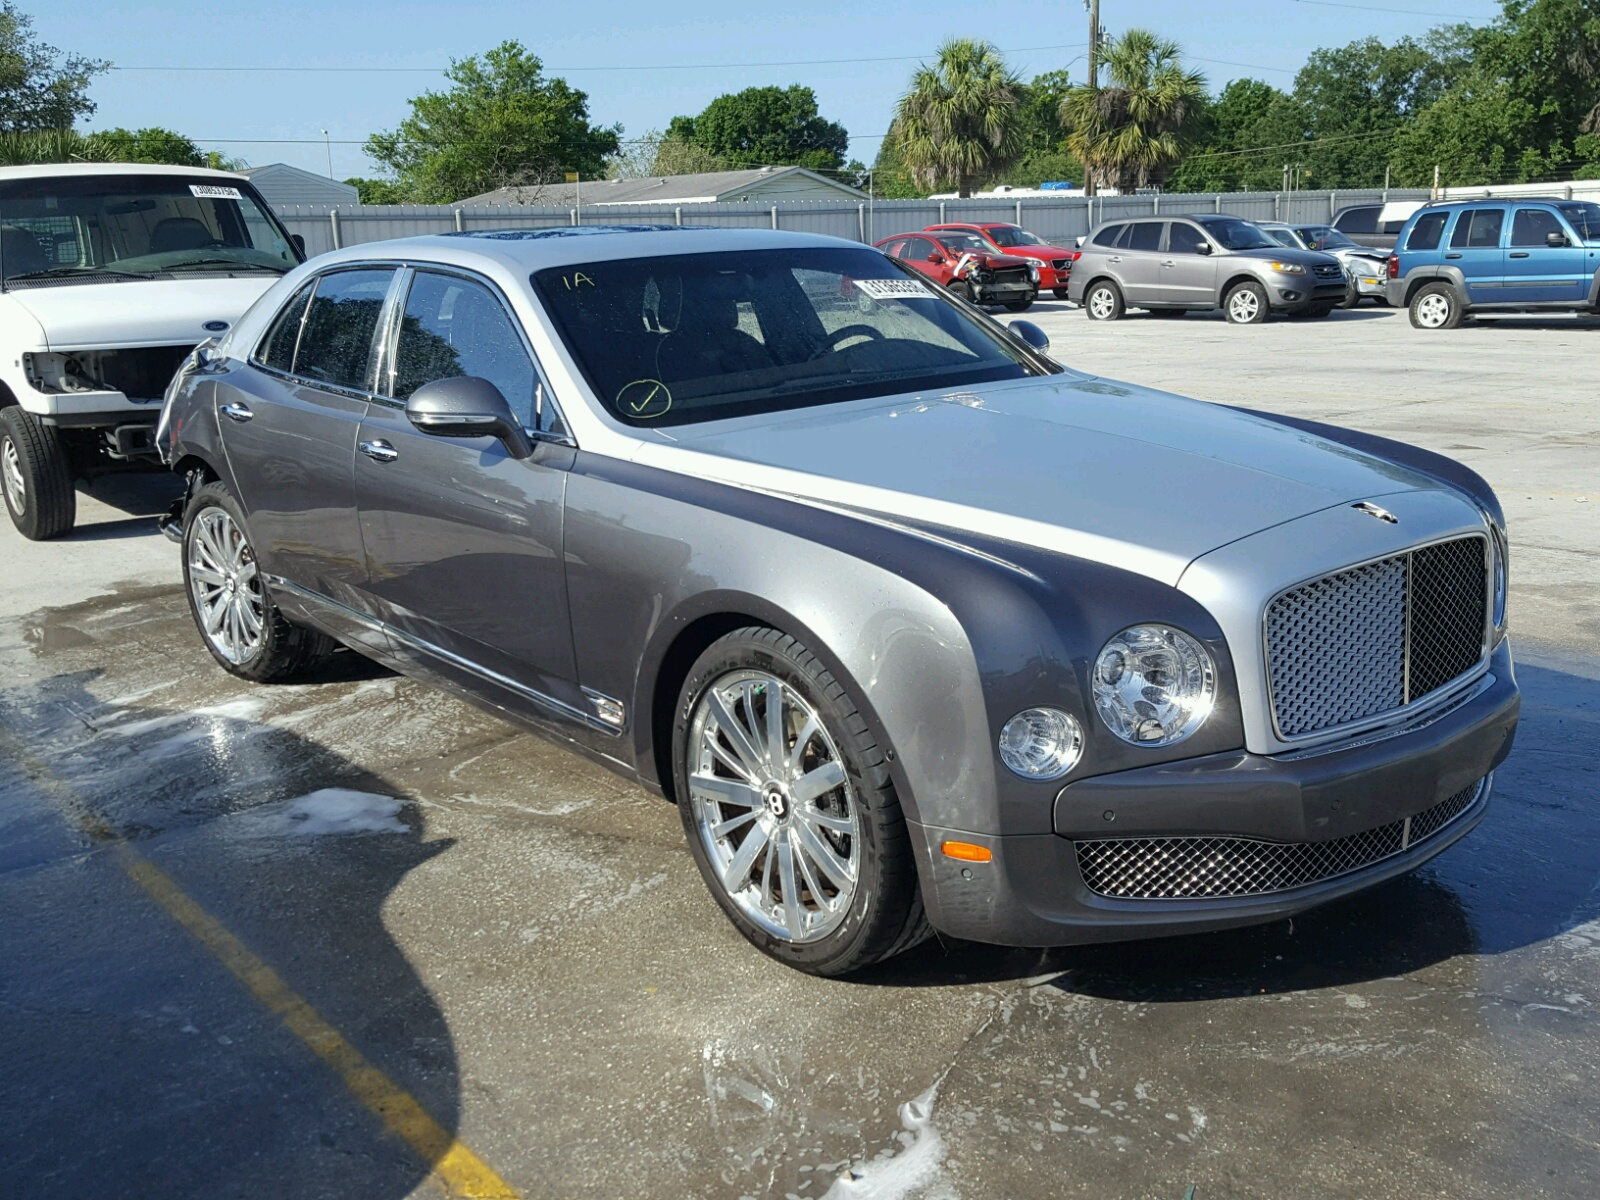 in auction listings c classiccars of north sale cc picture std vehicle large com located fhuv view florida continental miami bentley for